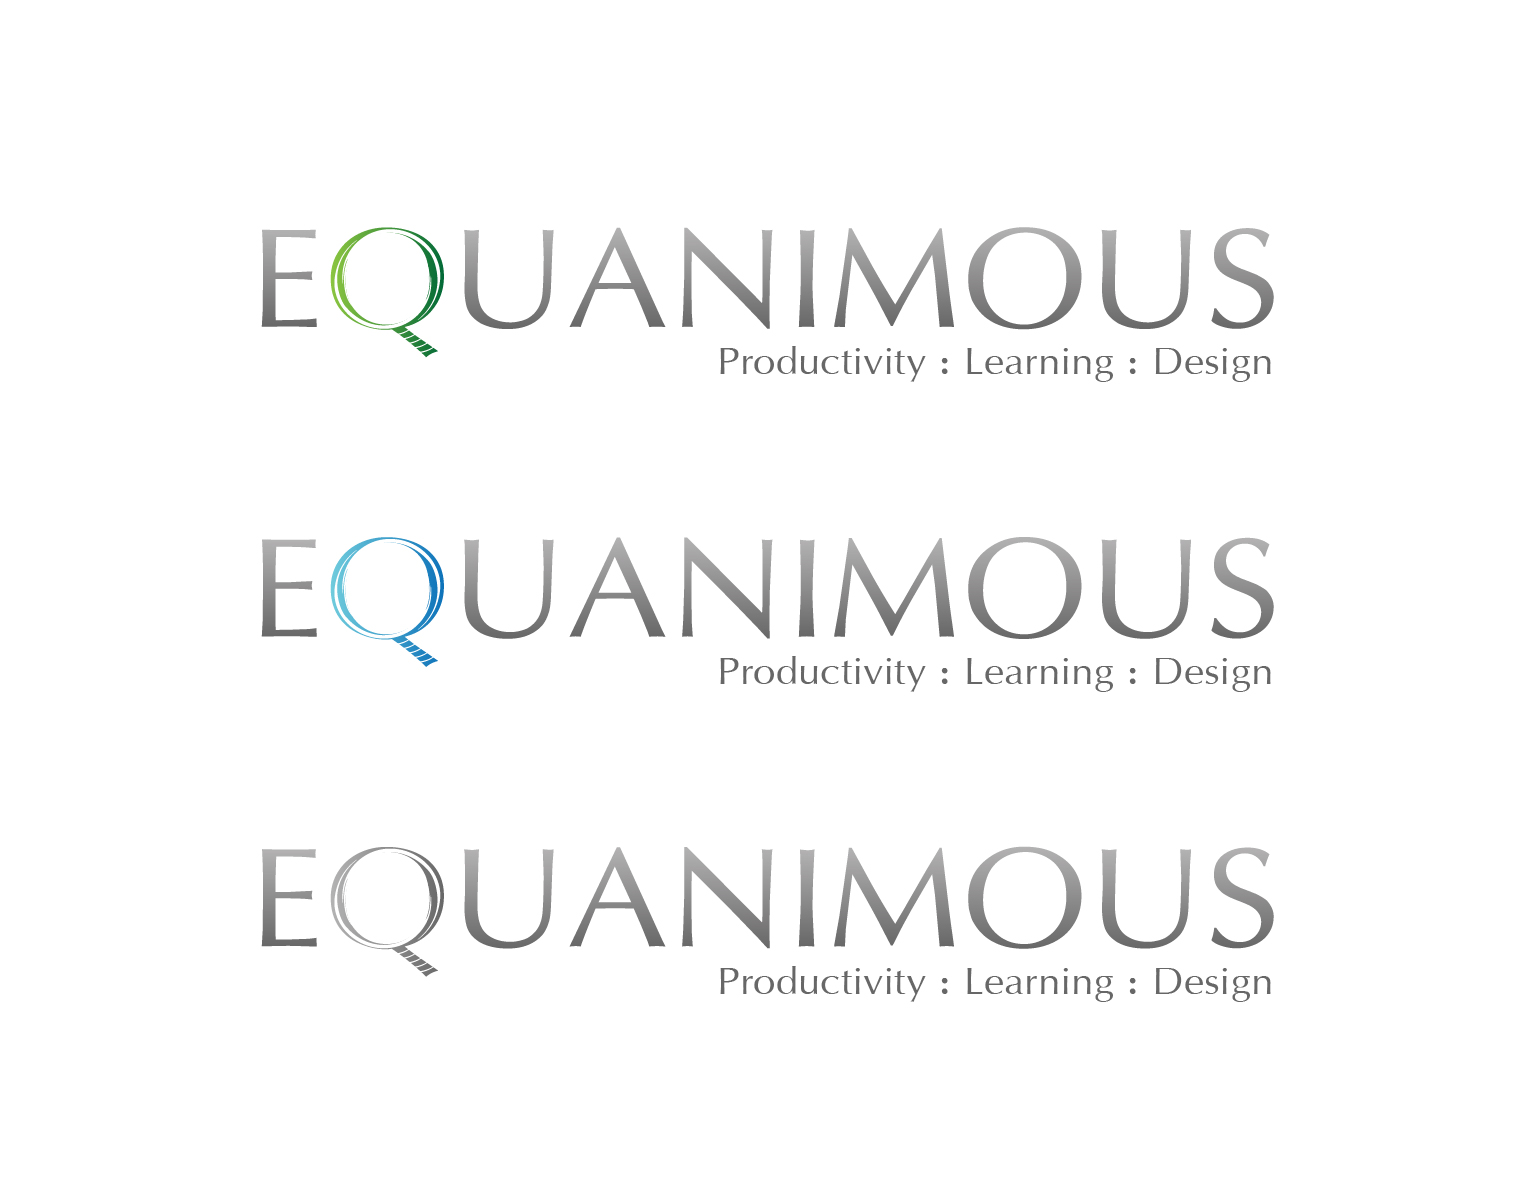 Logo Design by 3draw - Entry No. 525 in the Logo Design Contest Logo Design : EQUANIMOUS : Productivity | Learning | Design.